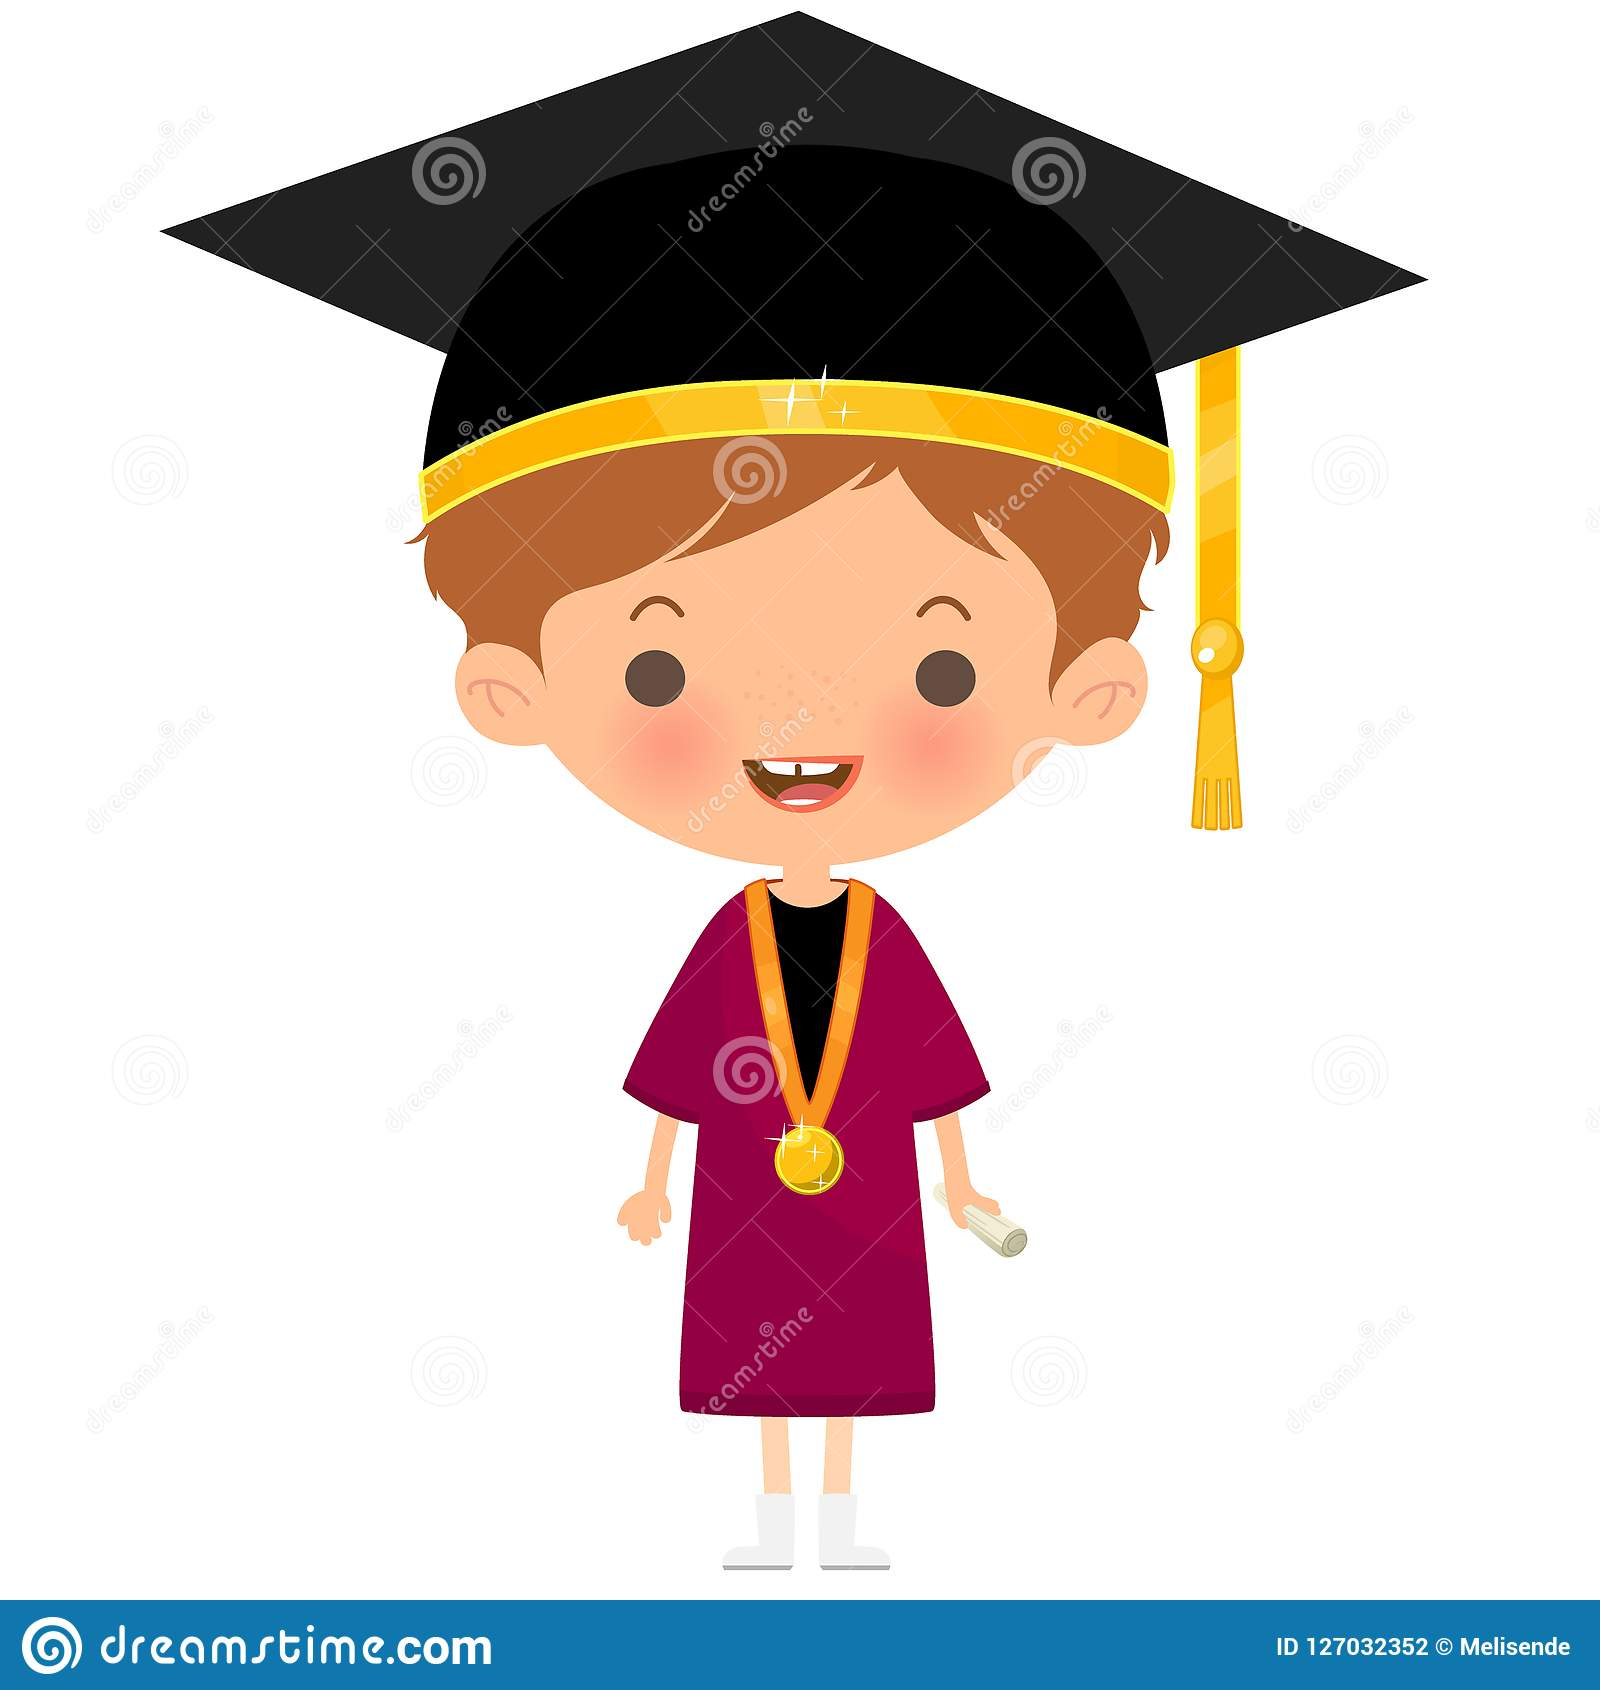 Happy student wearing graduation hat and outfit. Happy student smiling and wearing graduation hat outfit and medal holding a diploma Stock Illustration